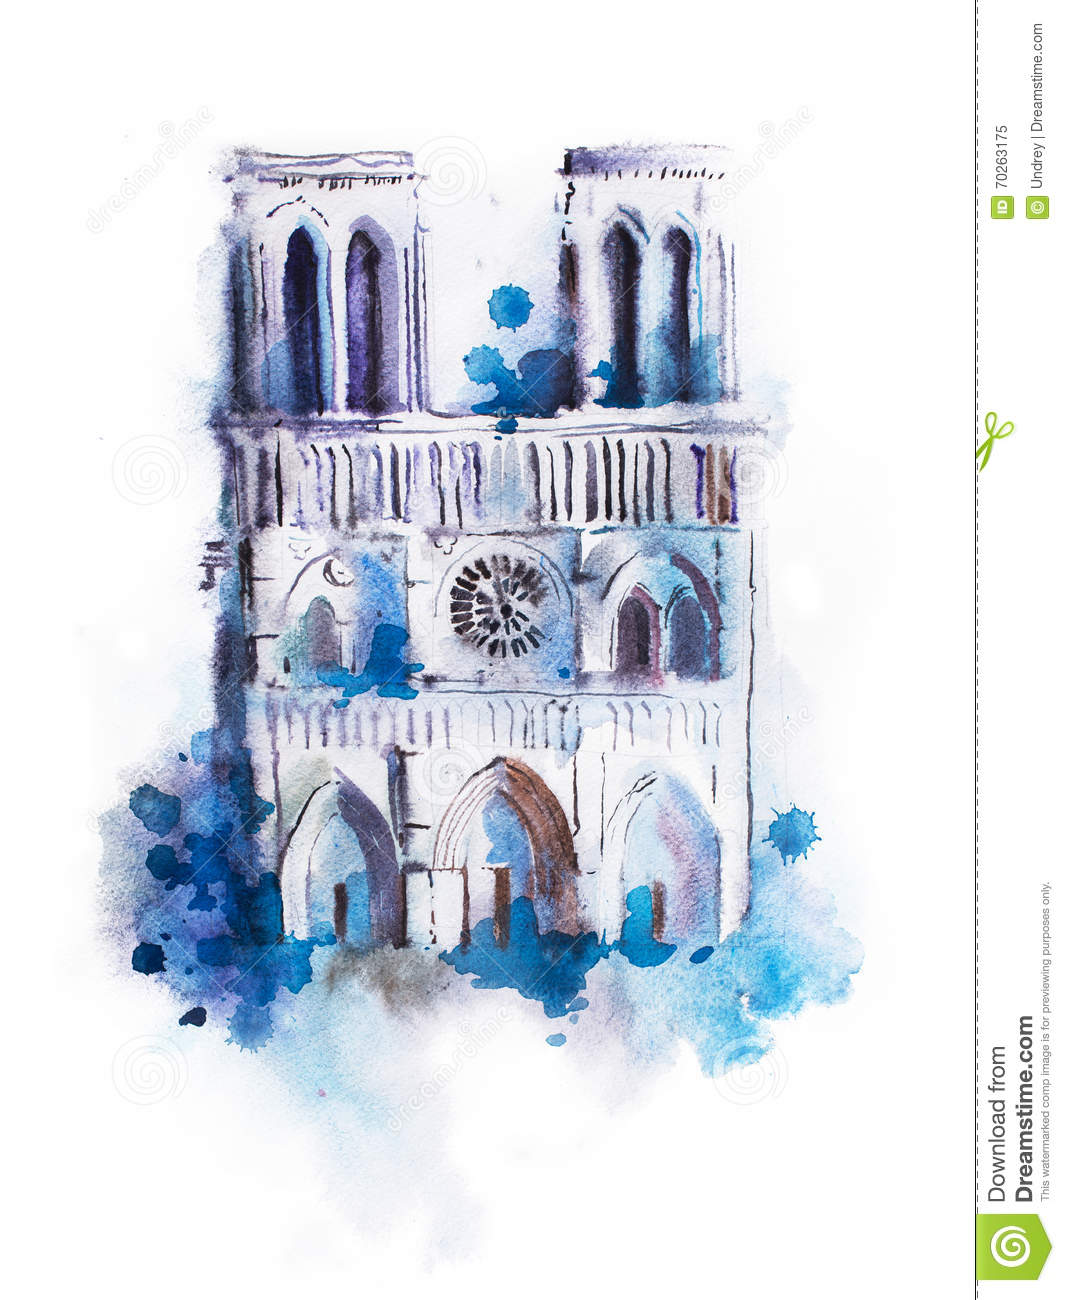 dessin d 39 aquarelle de notre dame peinture de vue de paris d 39 aquarelle photo stock image 70263175. Black Bedroom Furniture Sets. Home Design Ideas